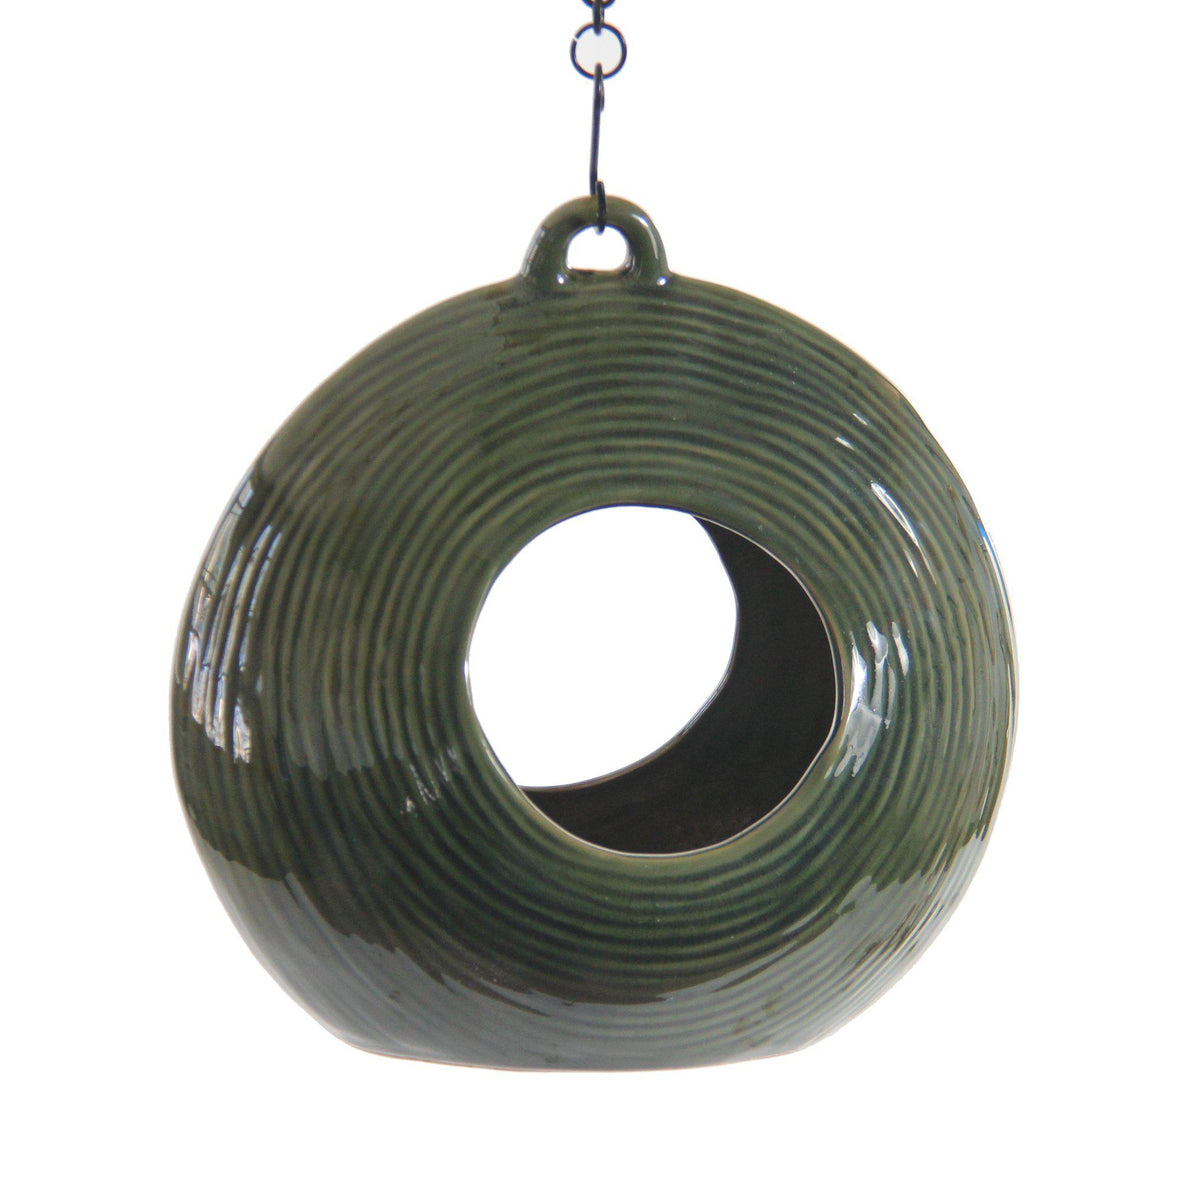 Circles Fly-Through Feeder, Heather Green, from Byer of Maine